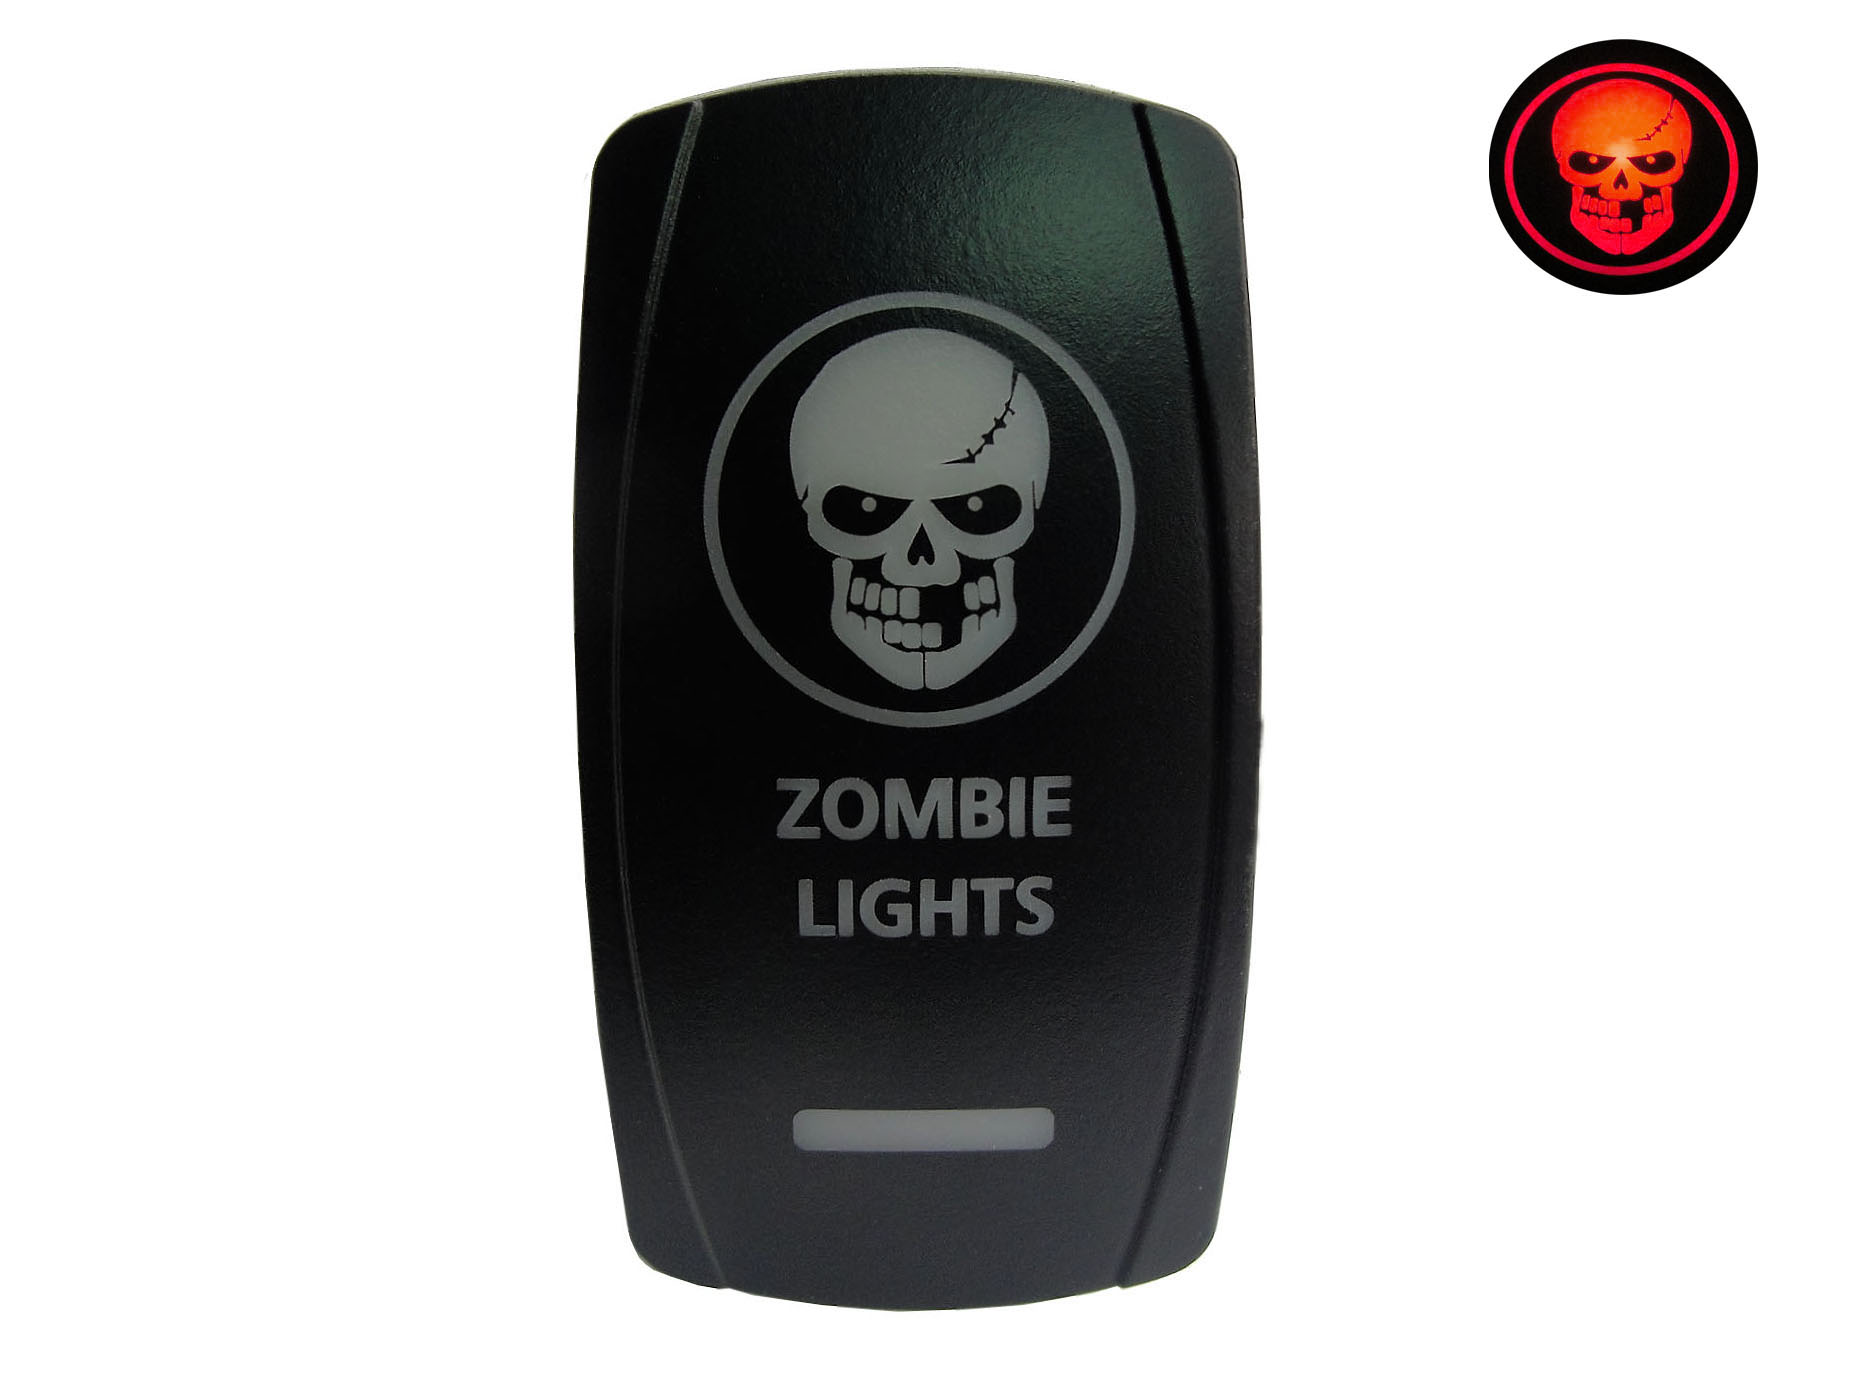 Lighted Toggle Switch Zombie Dpdt Jd Supply Llc How To Install A Rocker View The Full Image